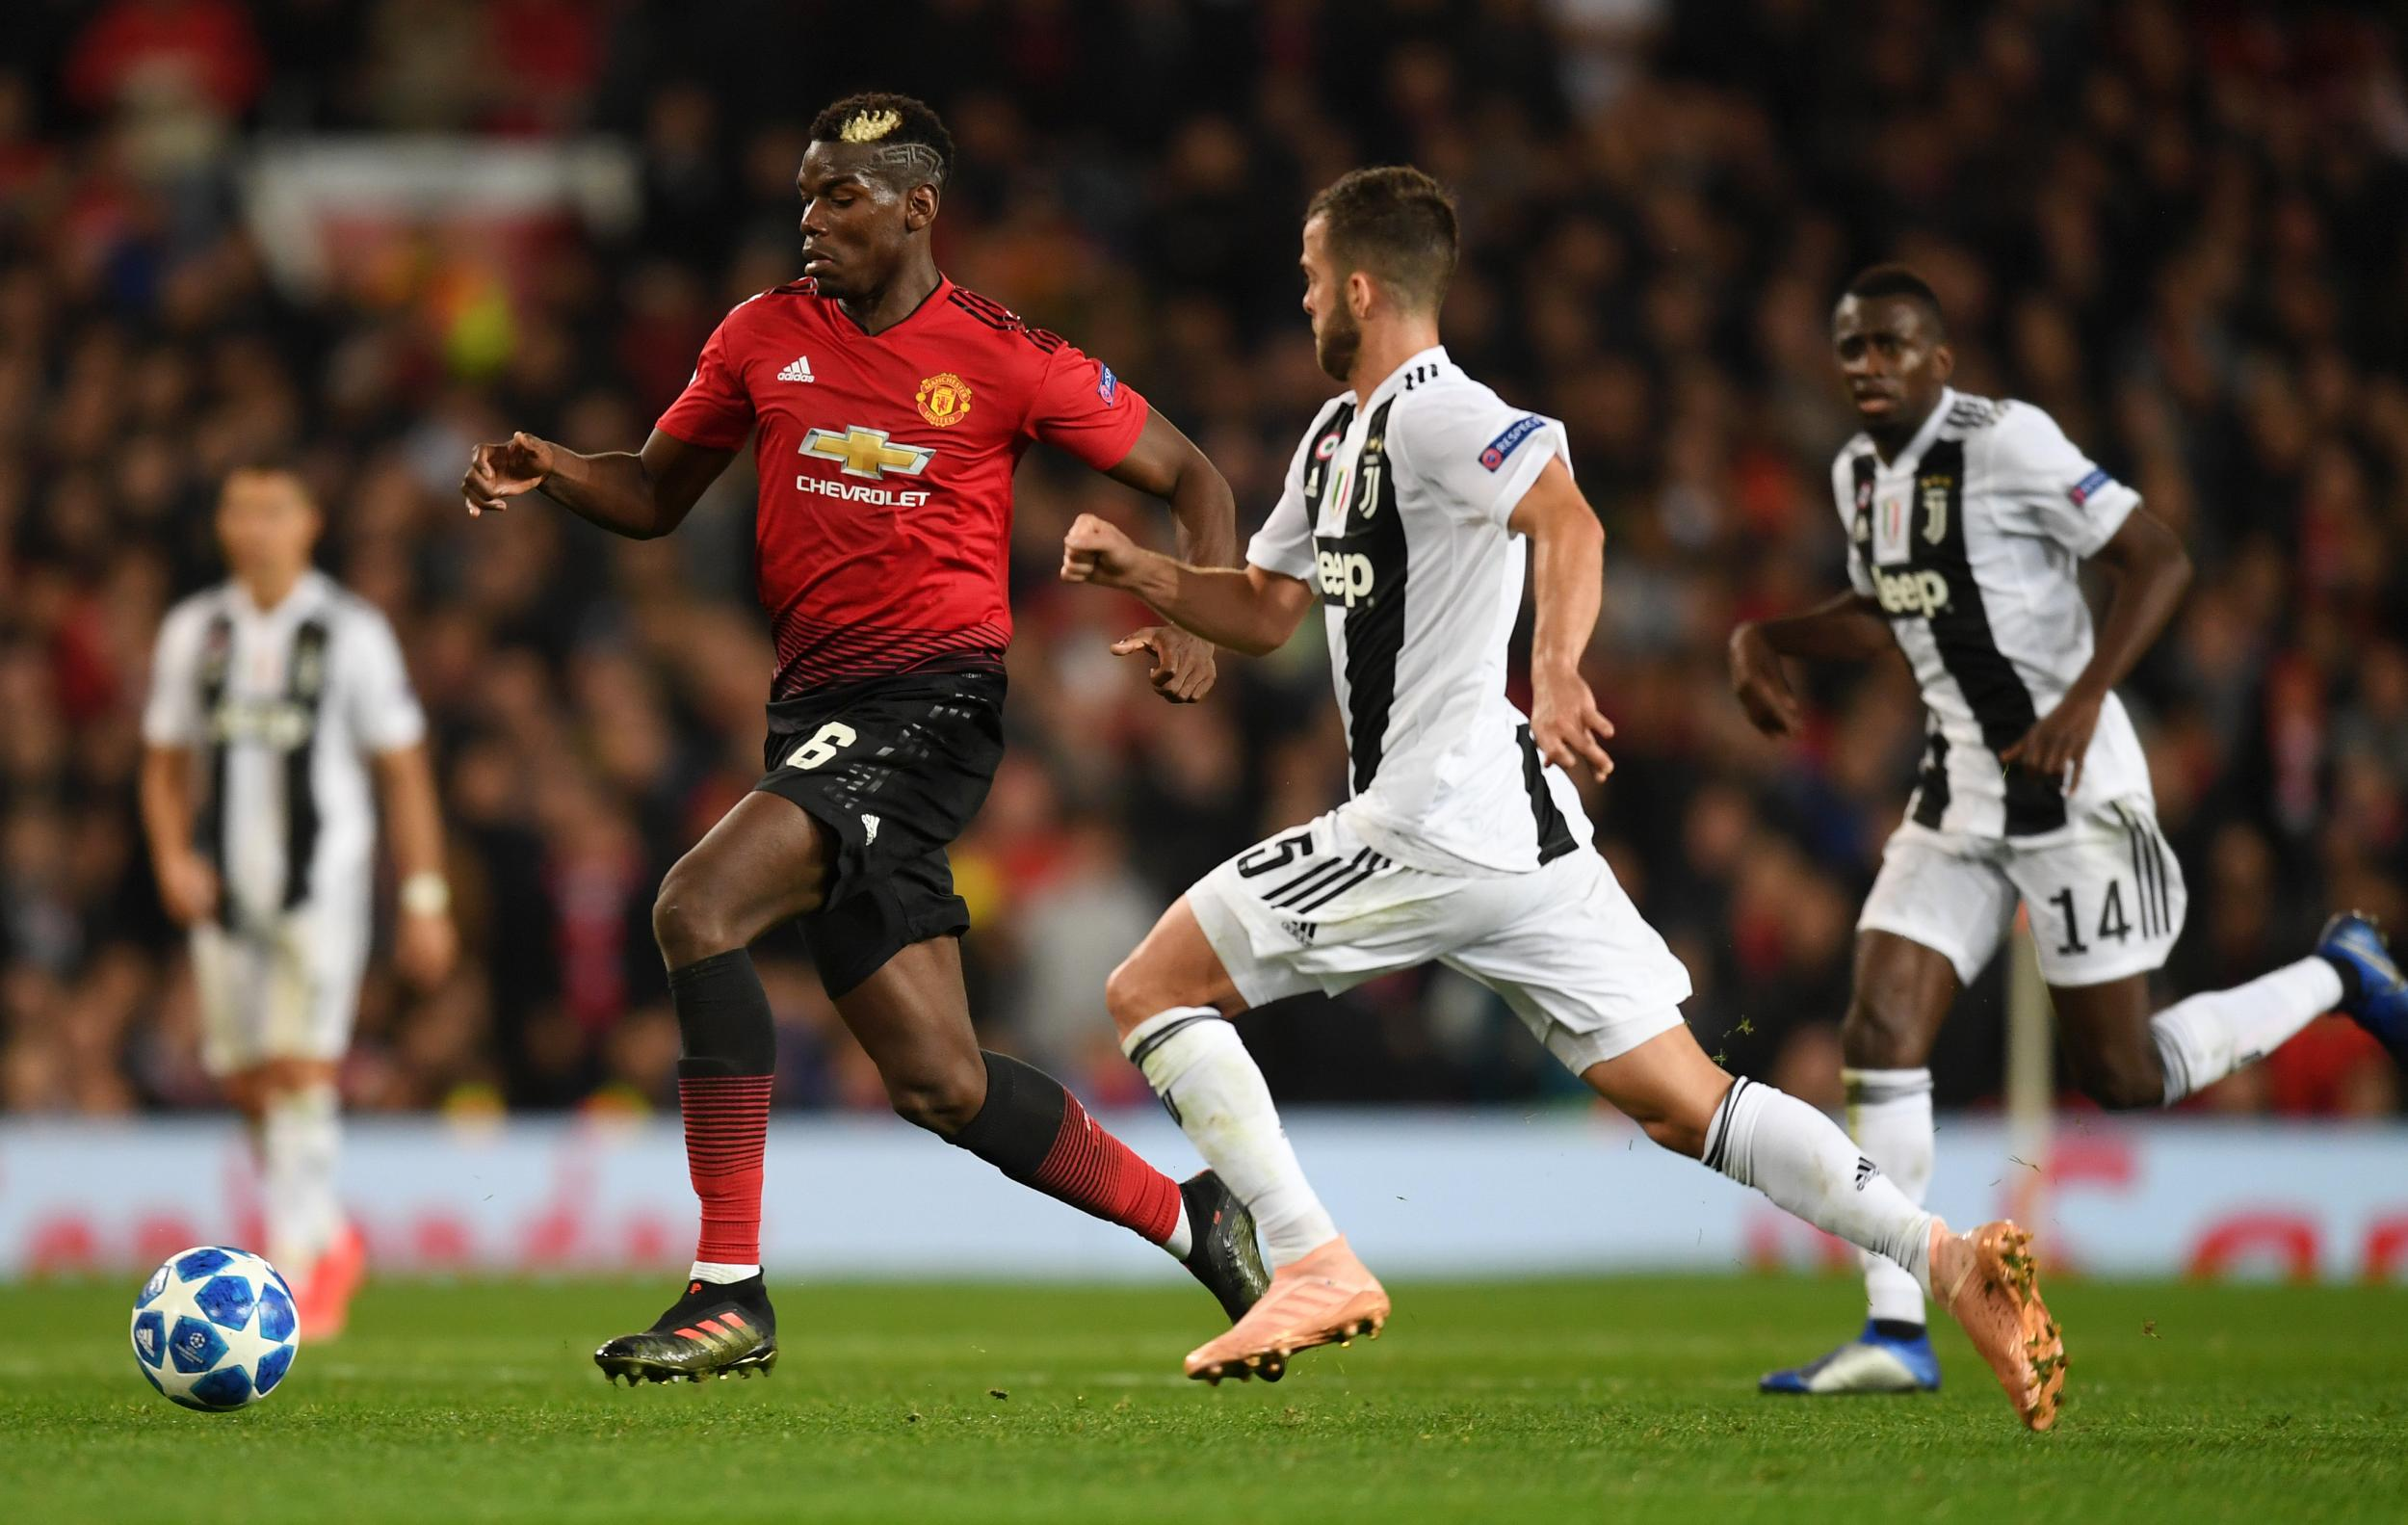 Juventus vs Man United